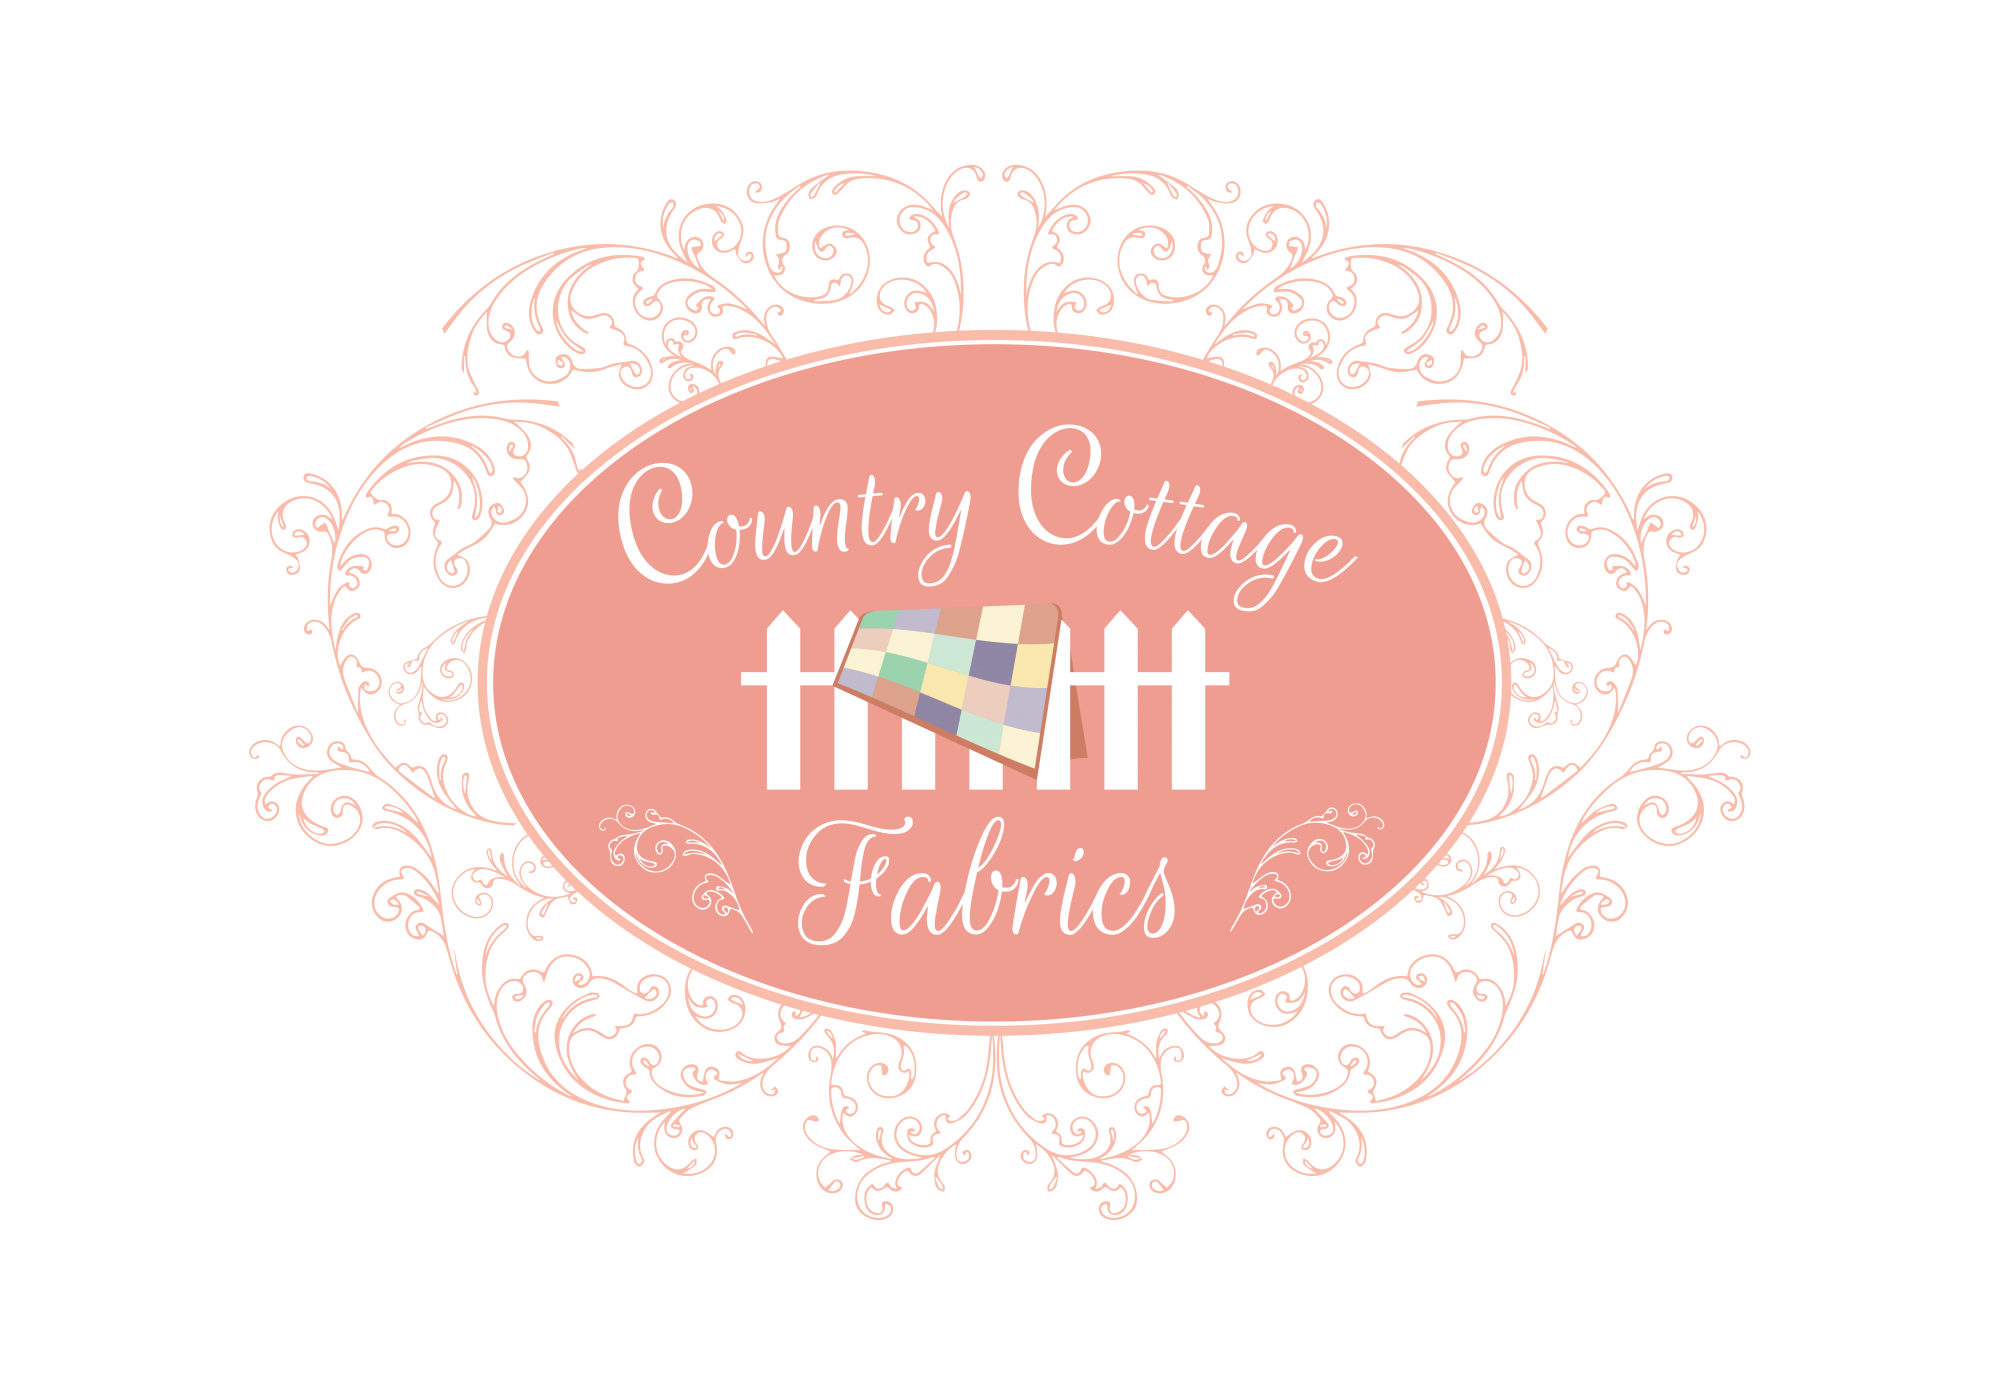 Country Cottage Gift Certificate ($50.00)